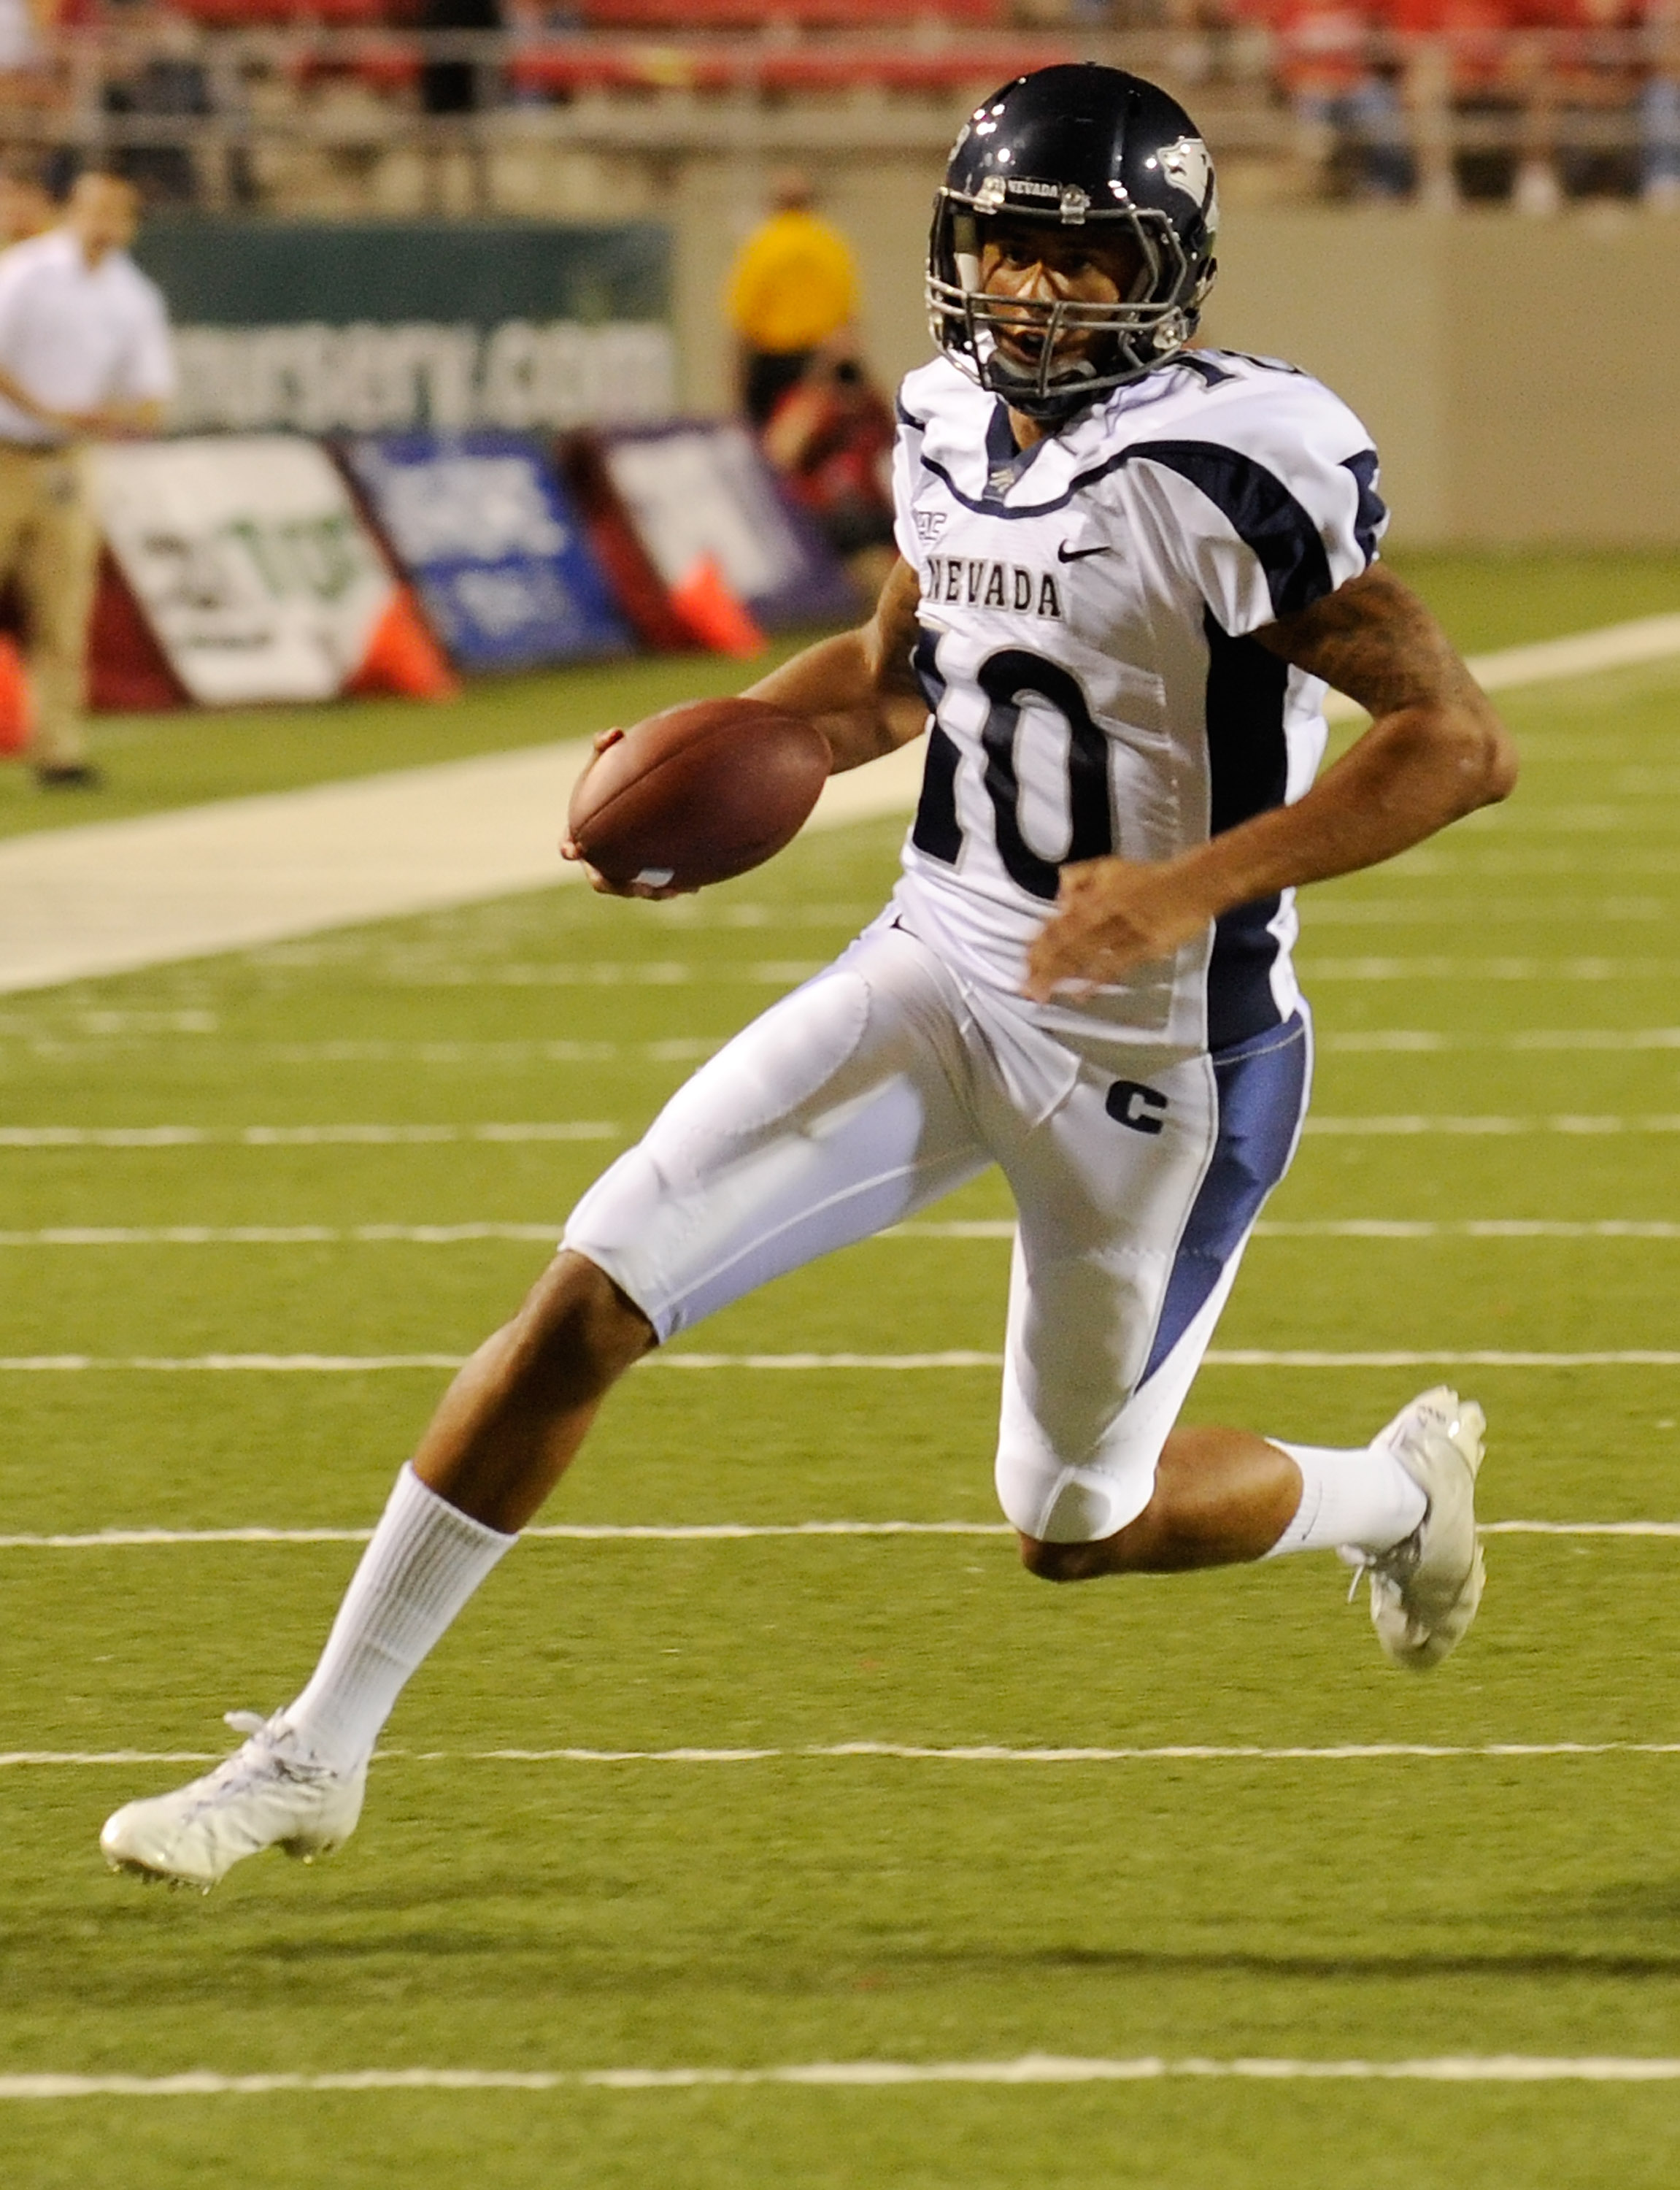 LAS VEGAS - OCTOBER 02:  Quarterback Colin Kaepernick #10 of the Nevada Reno Wolf Pack runs for a touchdown against the UNLV Rebels in the first quarter of their game at Sam Boyd Stadium October 2, 2010 in Las Vegas, Nevada. Nevada Reno won 44-26.  (Photo